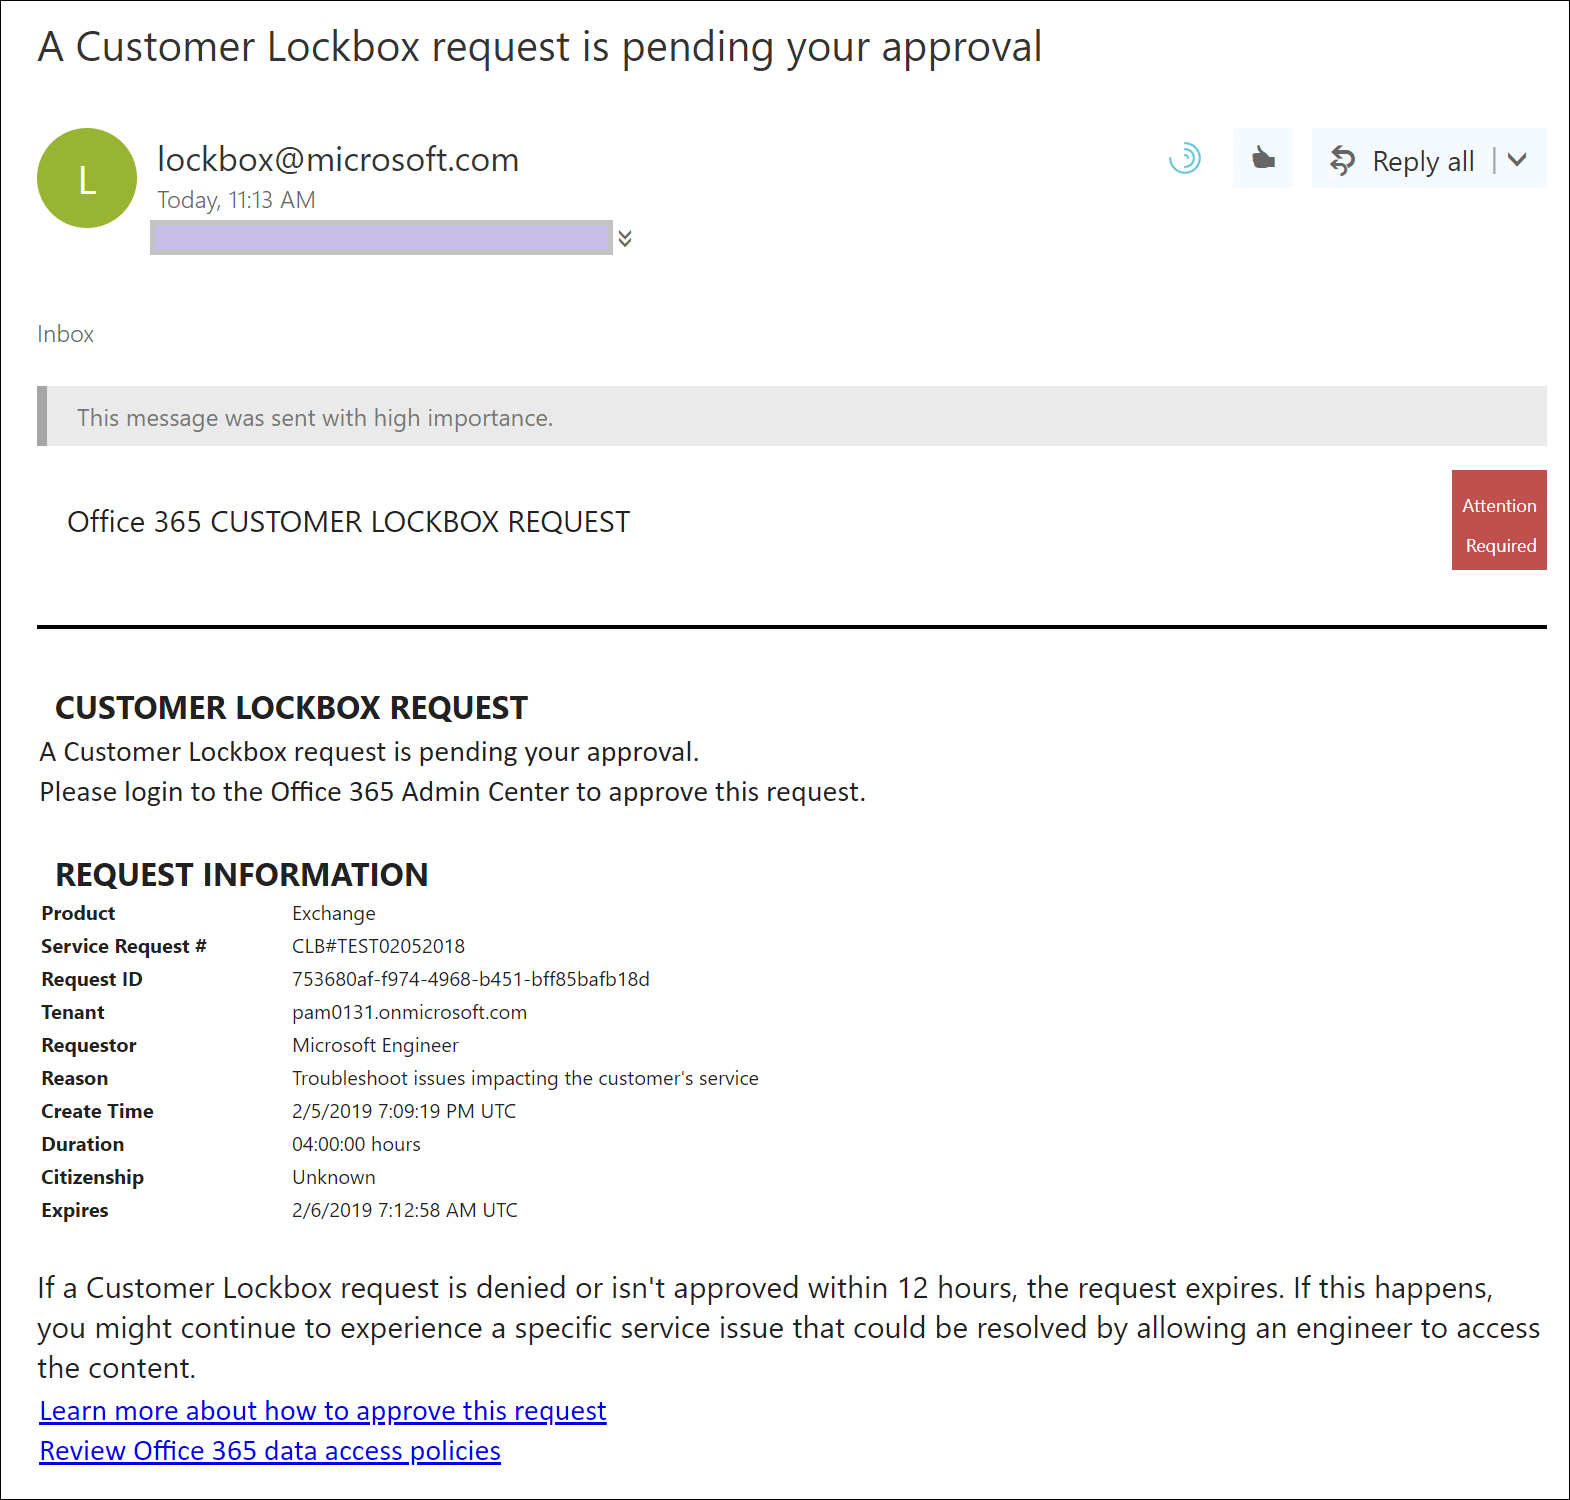 Office 365 Customer Lockbox Requests | Microsoft Docs